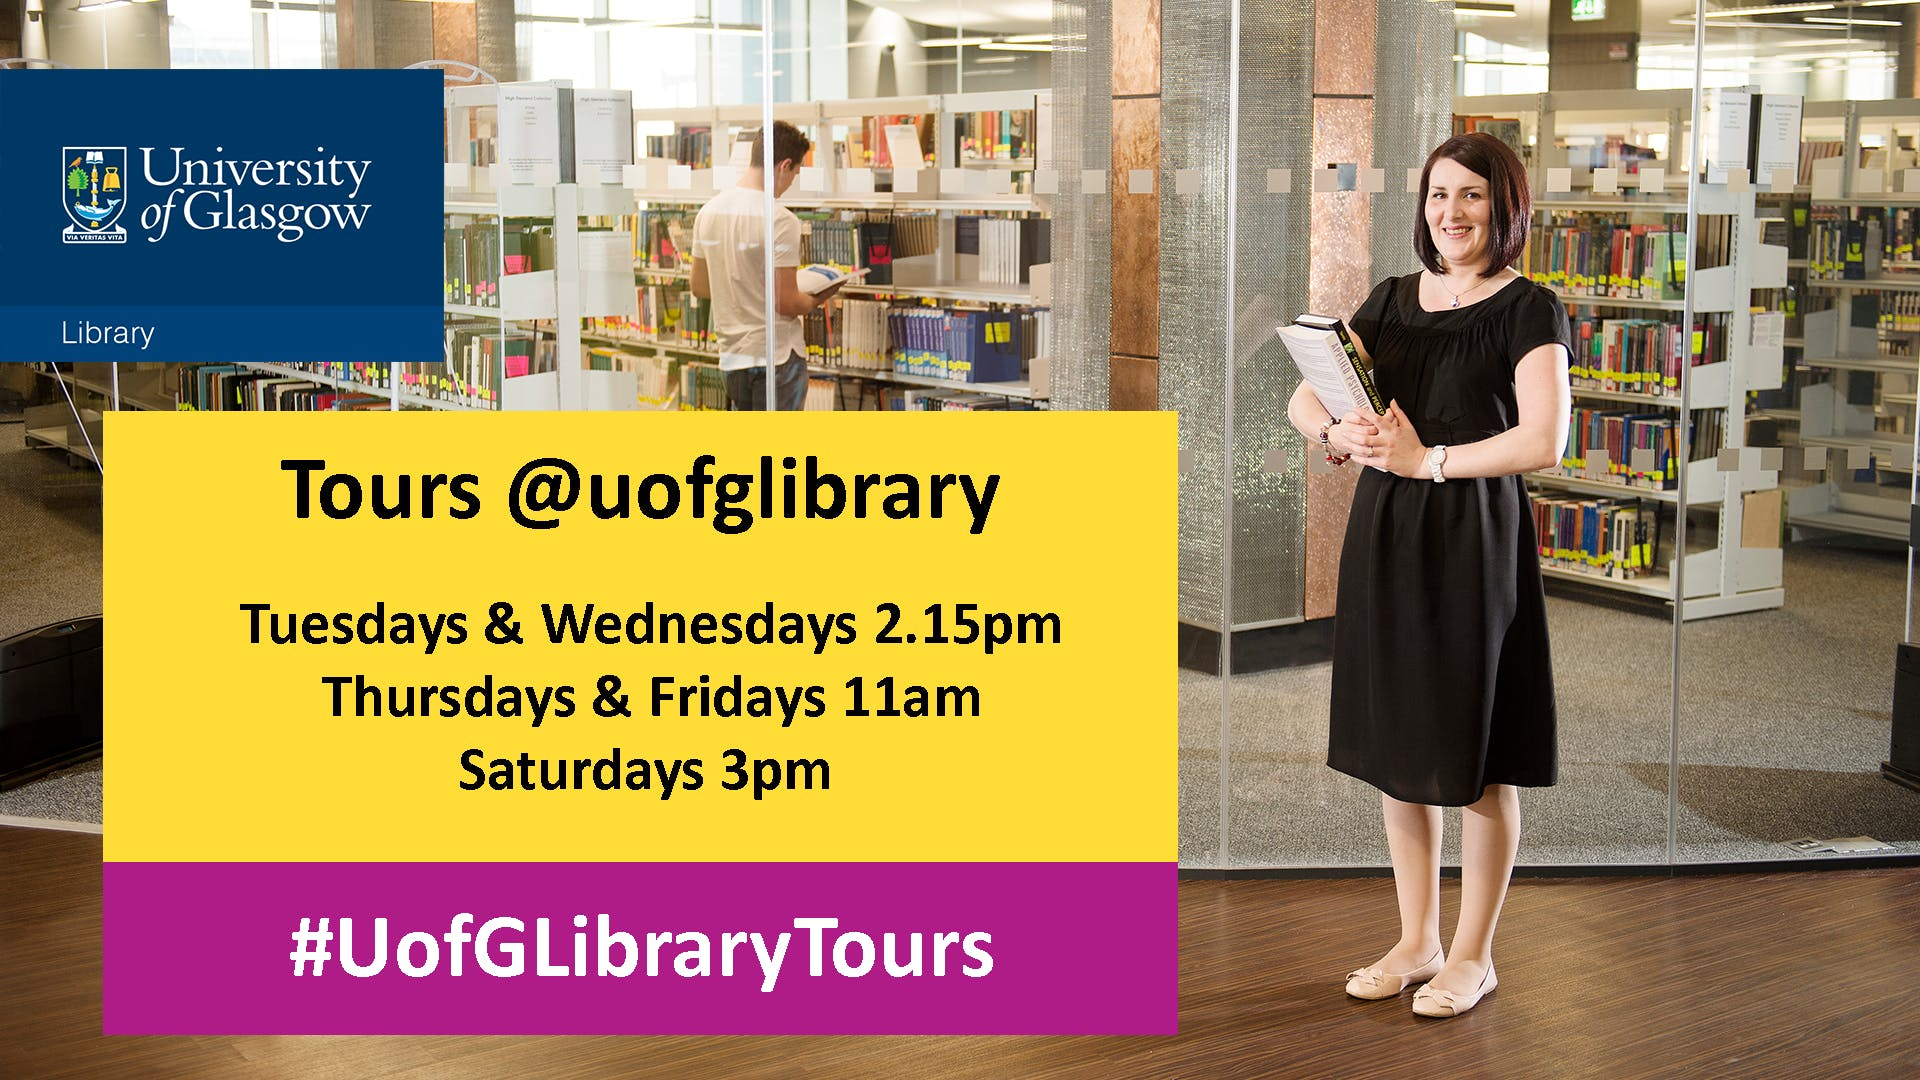 Library Tour - Tuesday 2.15pm